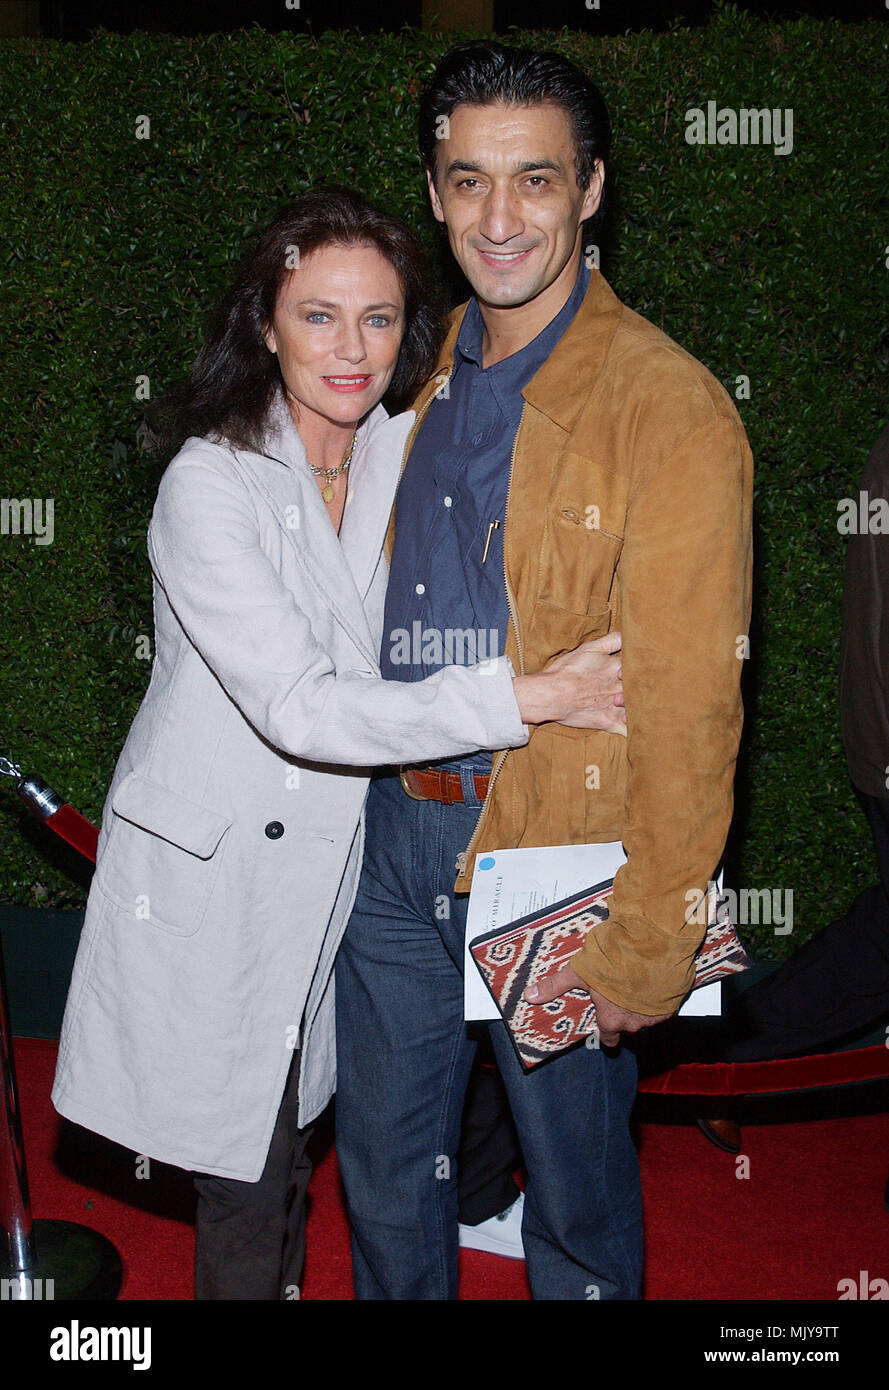 Jacqueline Bisset and Emin Boztepe arriving at the ' Maldonado Miracle Premiere ' at the Samuel Goldwyn Theatre in Los Angeles. October 2, 2003.          -            BissetJacq_BoztepeEmin11.JPG           -              BissetJacq_BoztepeEmin11.JPGBissetJacq_BoztepeEmin11  Event in Hollywood Life - California,  Red Carpet Event, Vertical, USA, Film Industry, Celebrities,  Photography, Bestof, Arts Culture and Entertainment, Topix Celebrities fashion /  from the Red Carpet-, Vertical, Best of, Hollywood Life, Event in Hollywood Life - California,  Red Carpet , USA, Film Industry, Celebrities,  - Stock Image